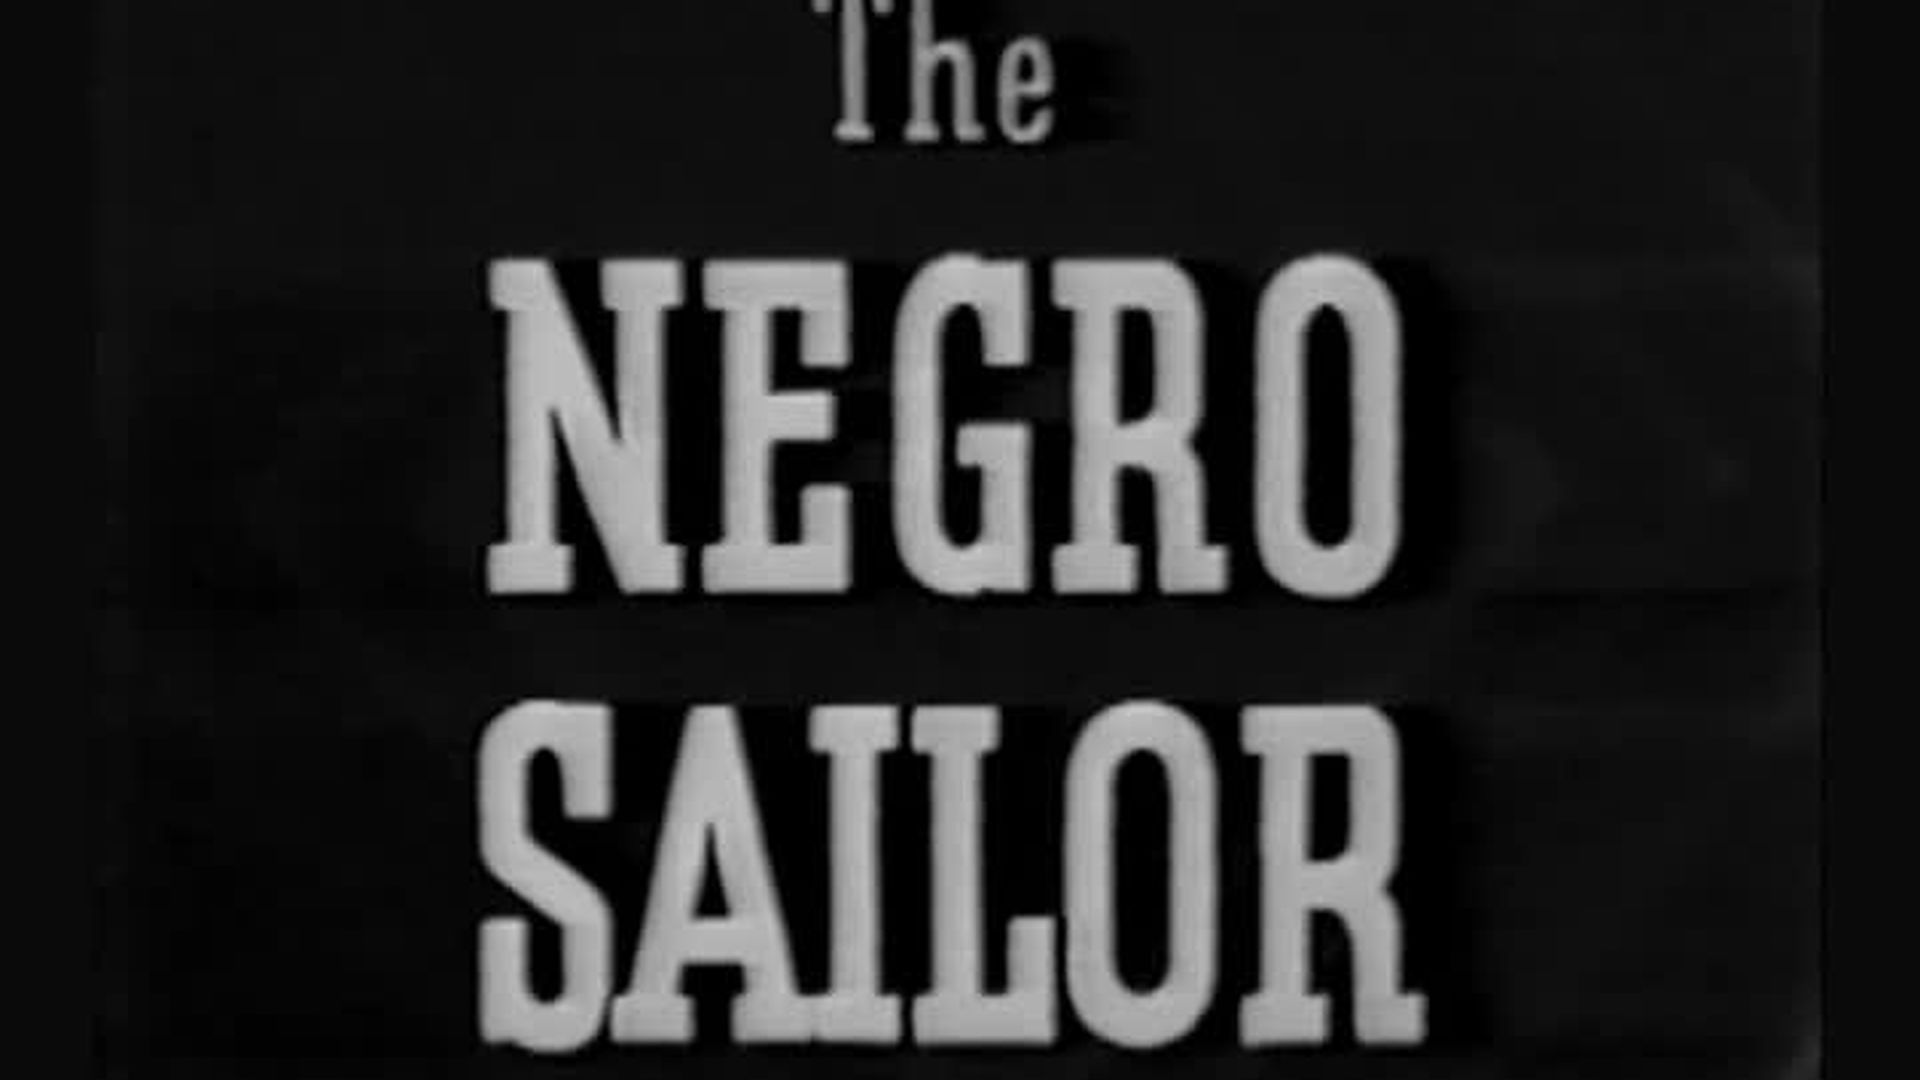 The Negro Sailor